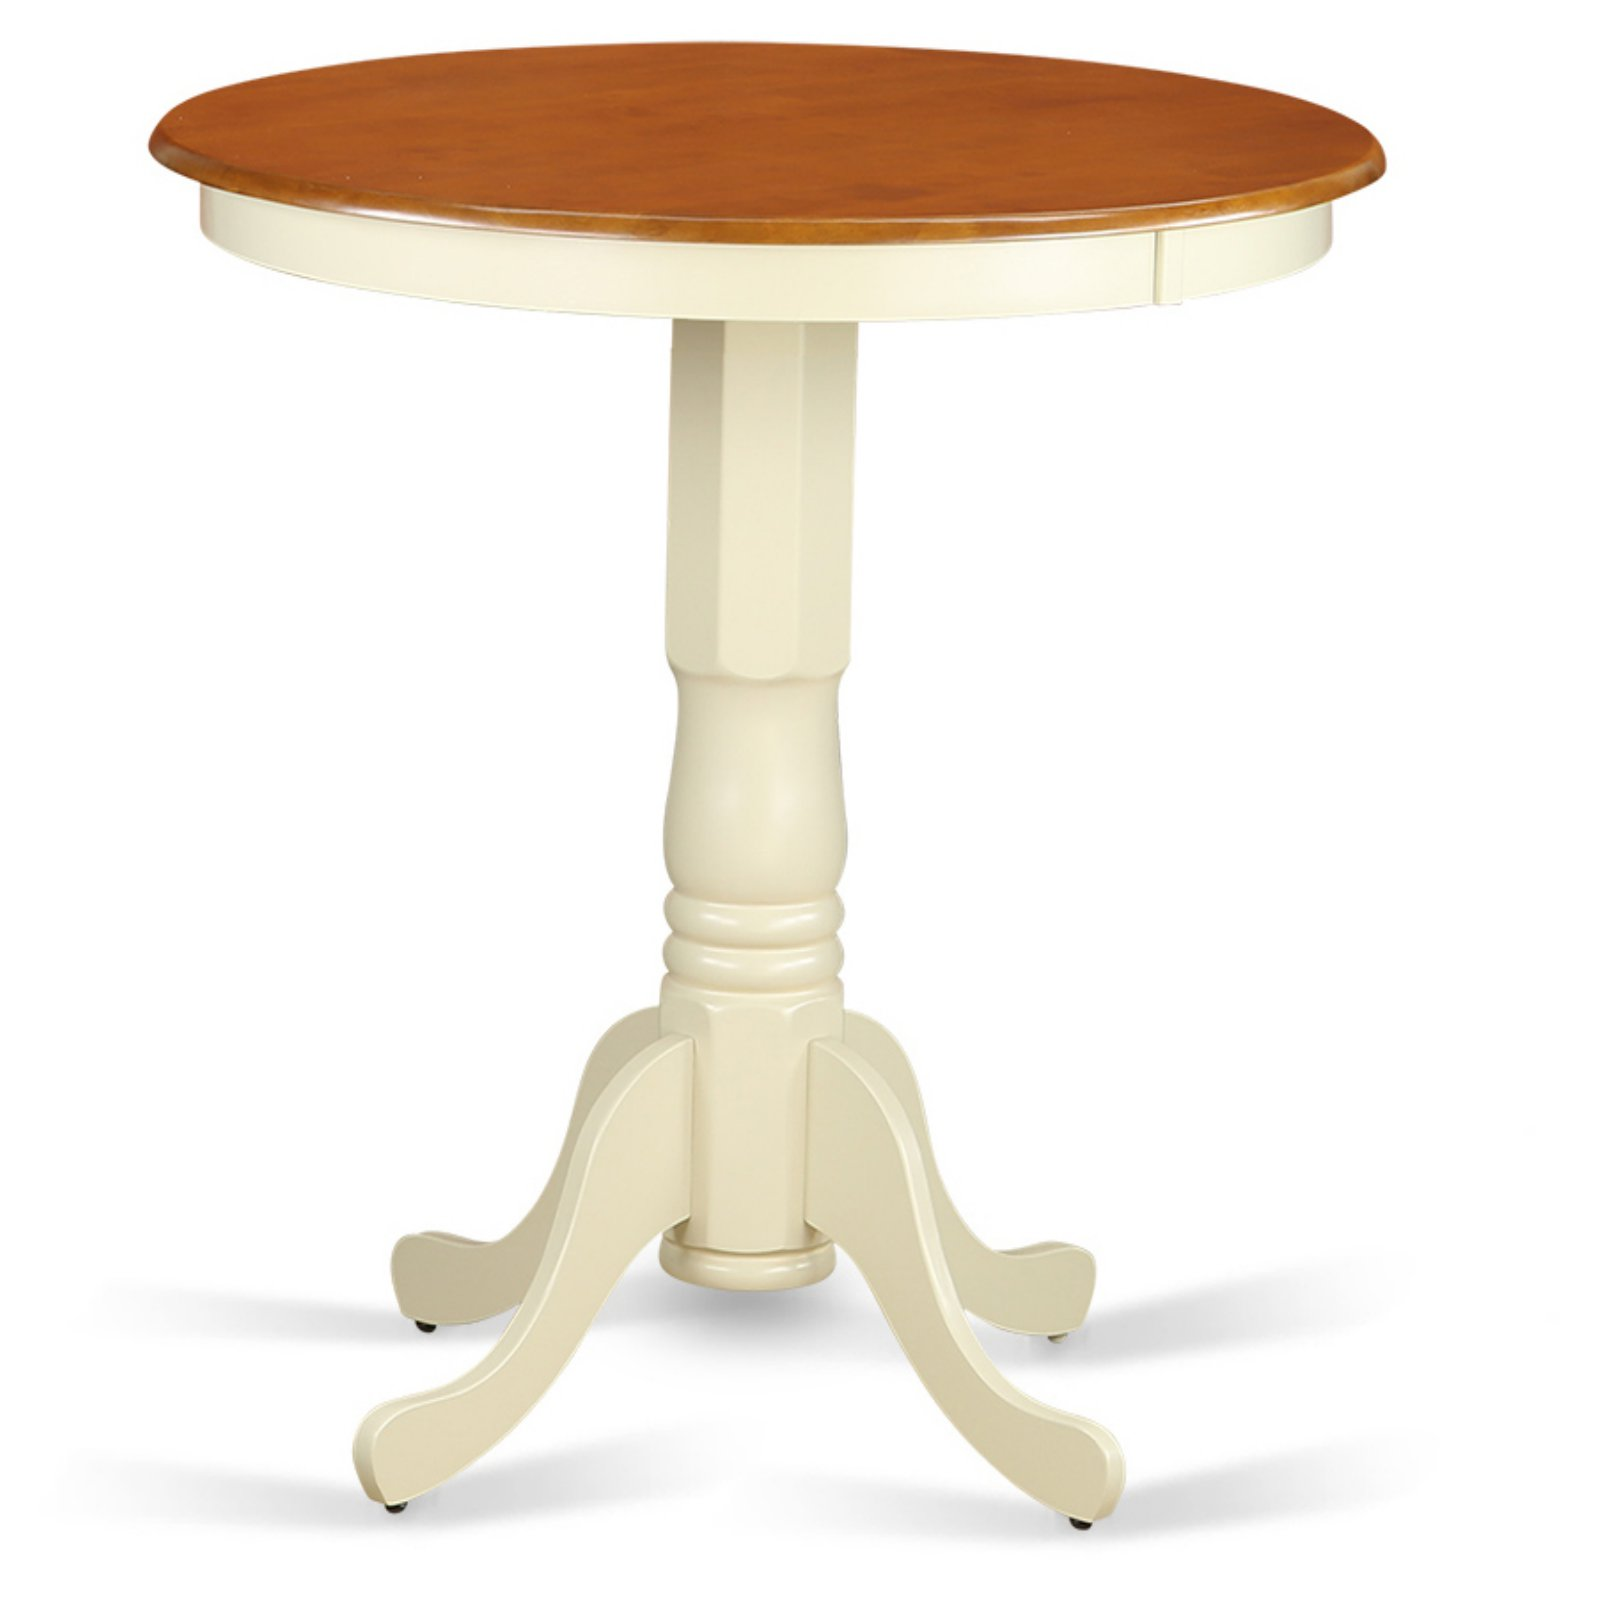 East West Furniture Eden Pedestal 30 Inch Round Counter Height Dining Table    Walmart.com